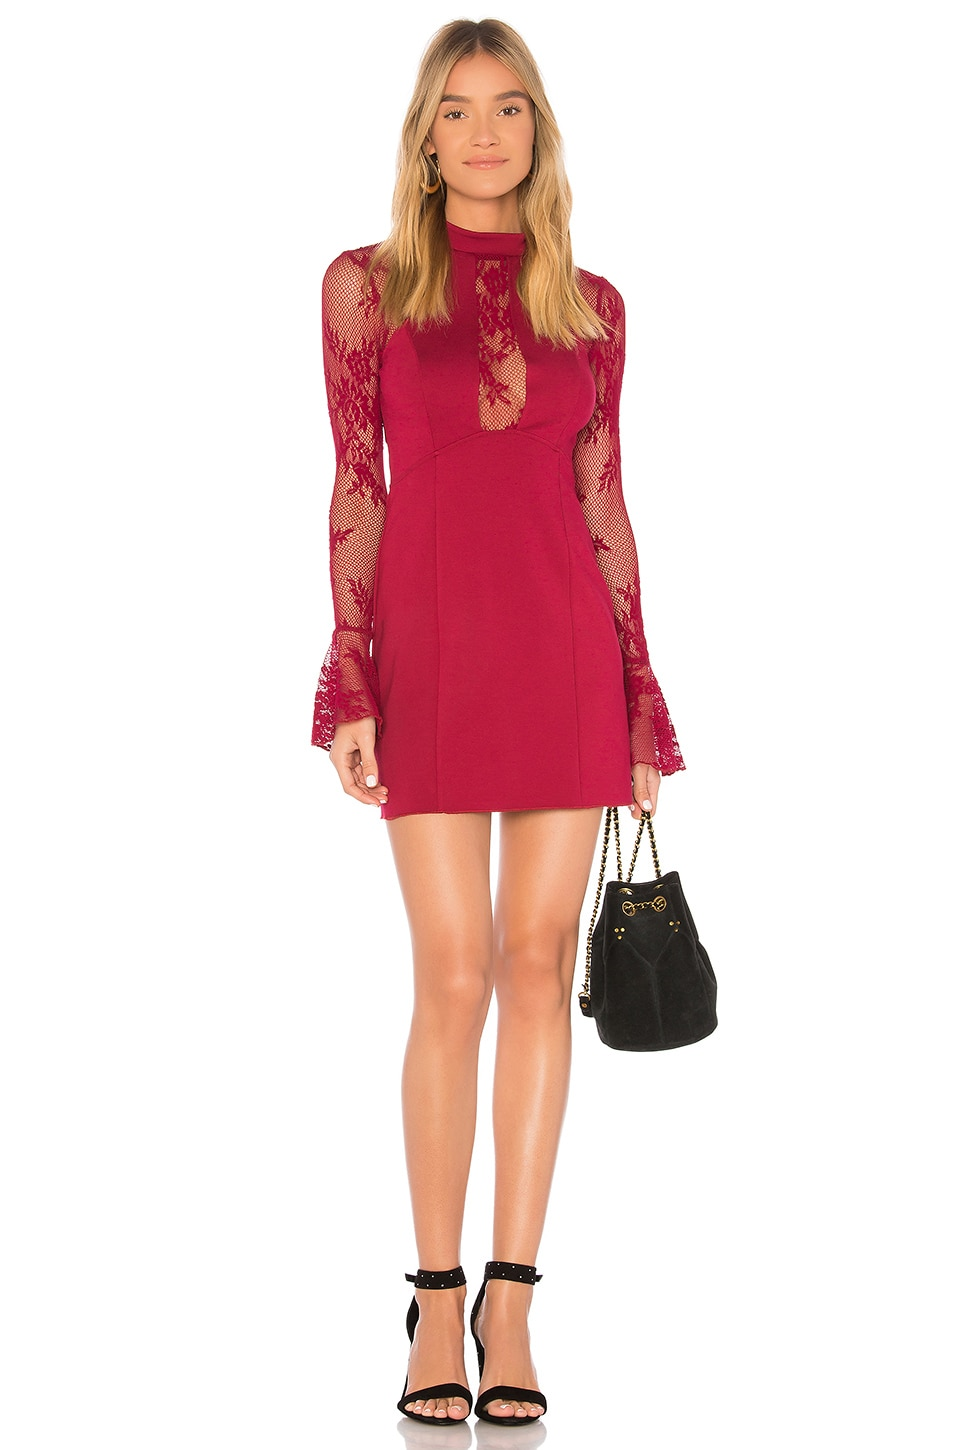 It's Now or Never Mini Dress by Free People